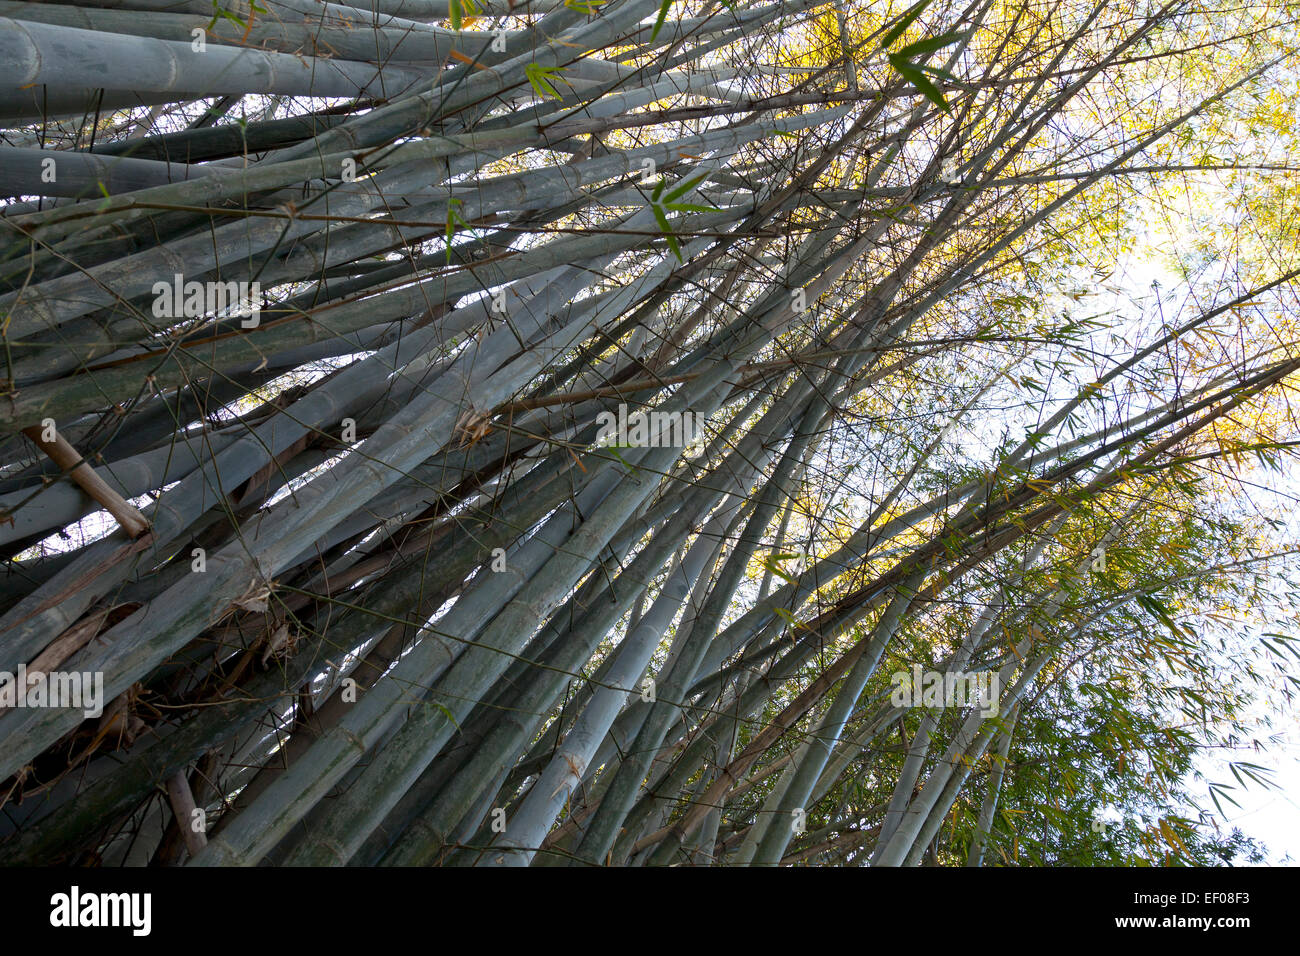 High bamboo plants seen from below on the ground - Stock Image